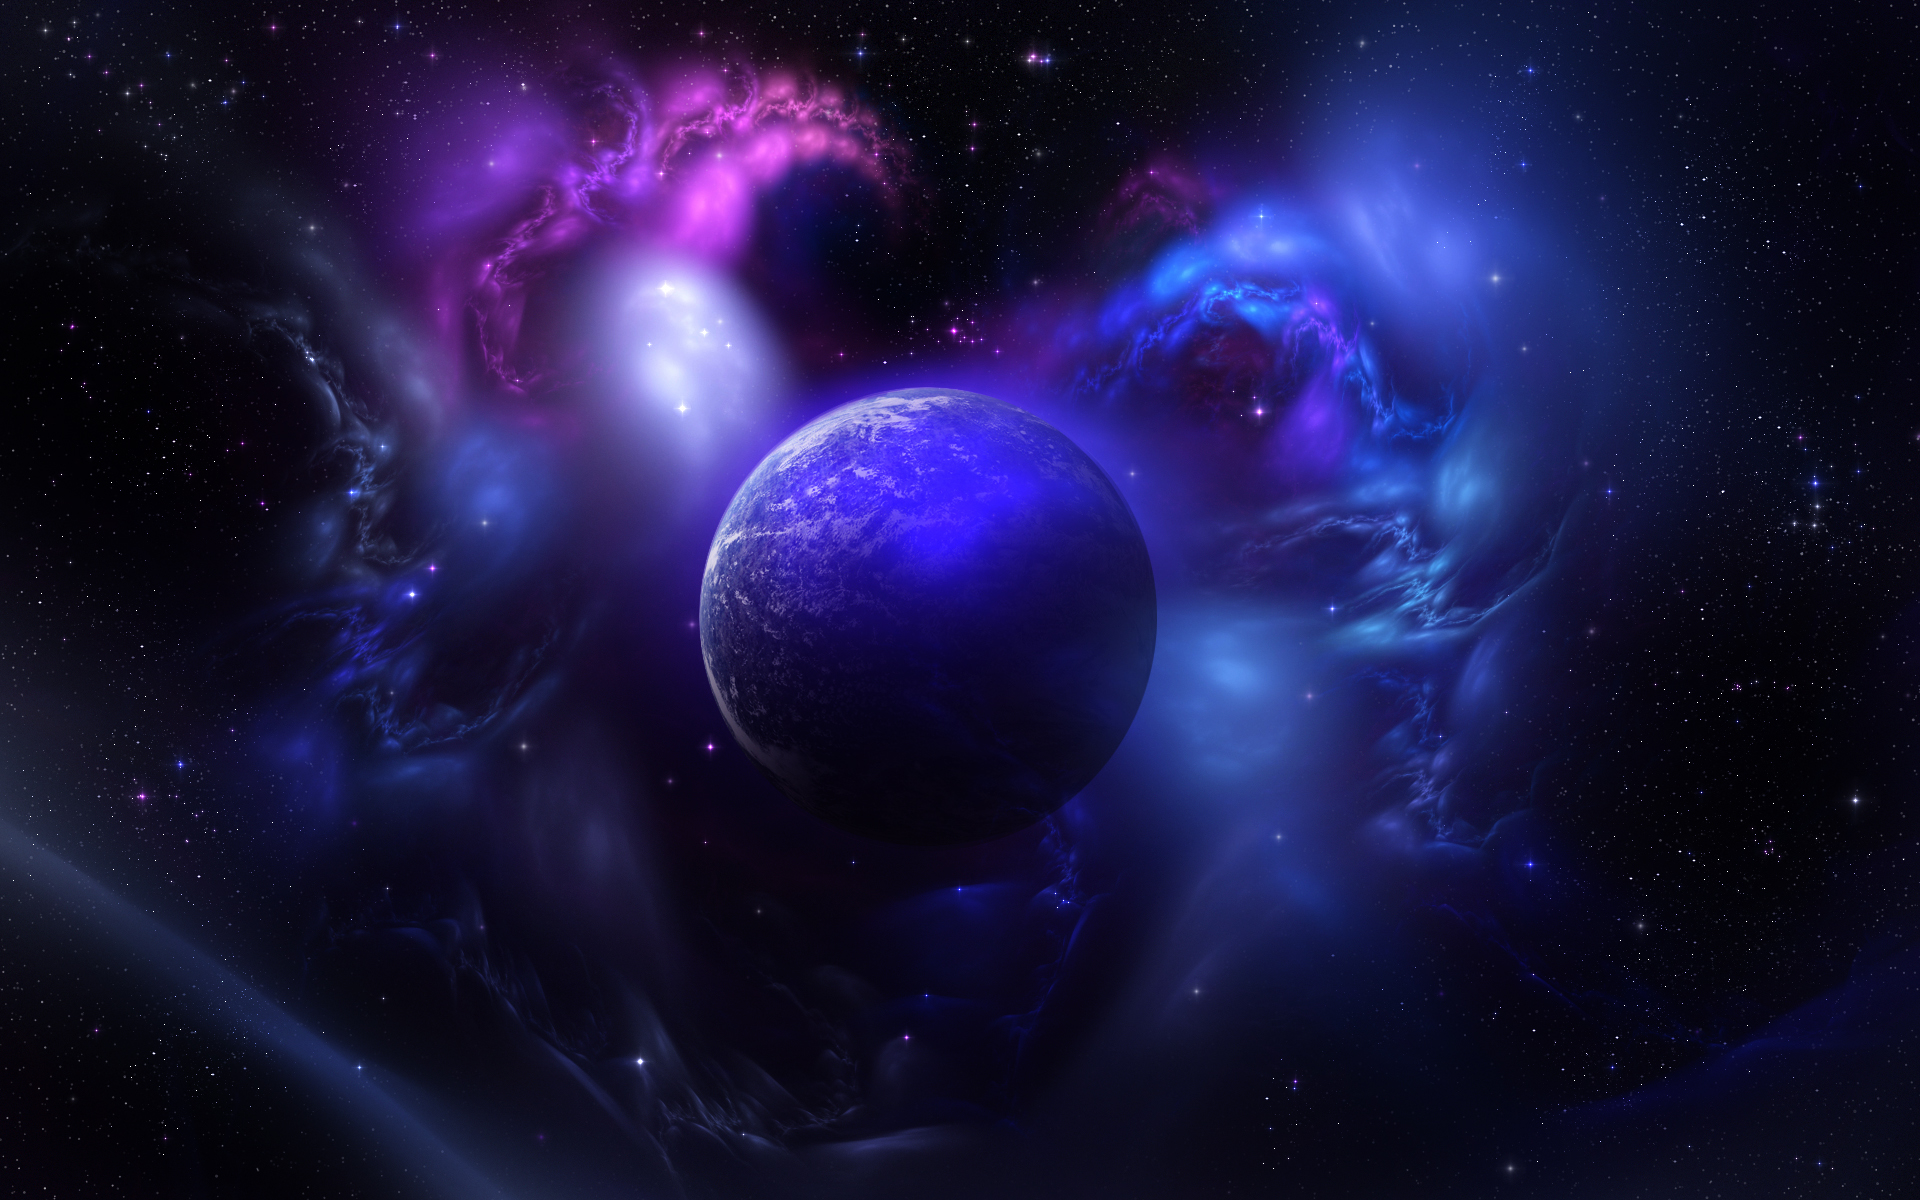 Science-Fiction - Planet  - Dunkel Hintergrundbild